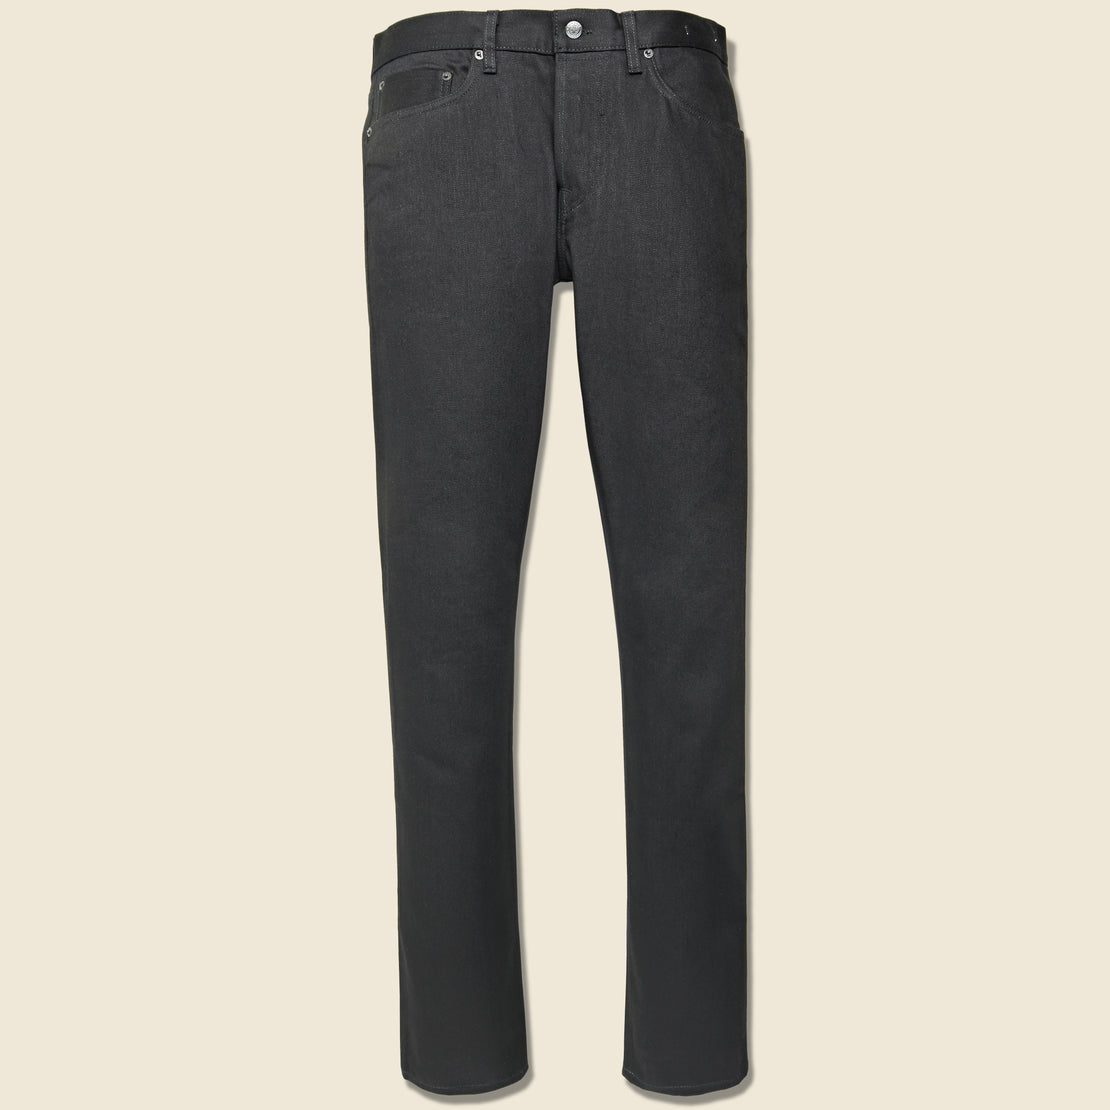 Imogene + Willie Charlie Jean - Black Rigid